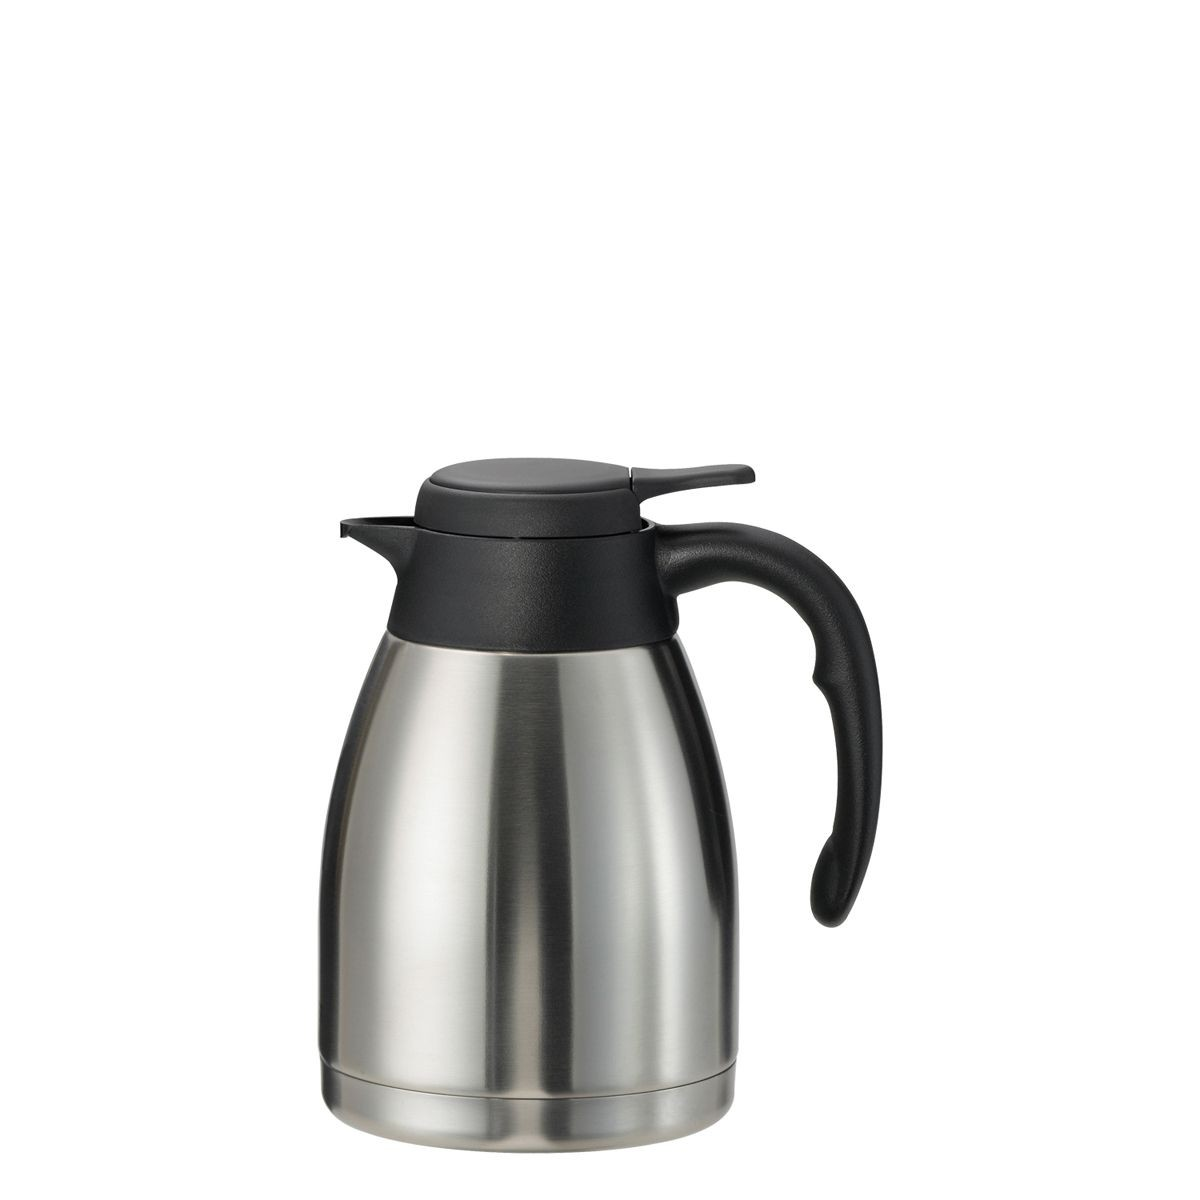 Service Ideas PWLA121 Steelvac Brushed Stainless Server, 1.2 Liter (40.6 oz.)